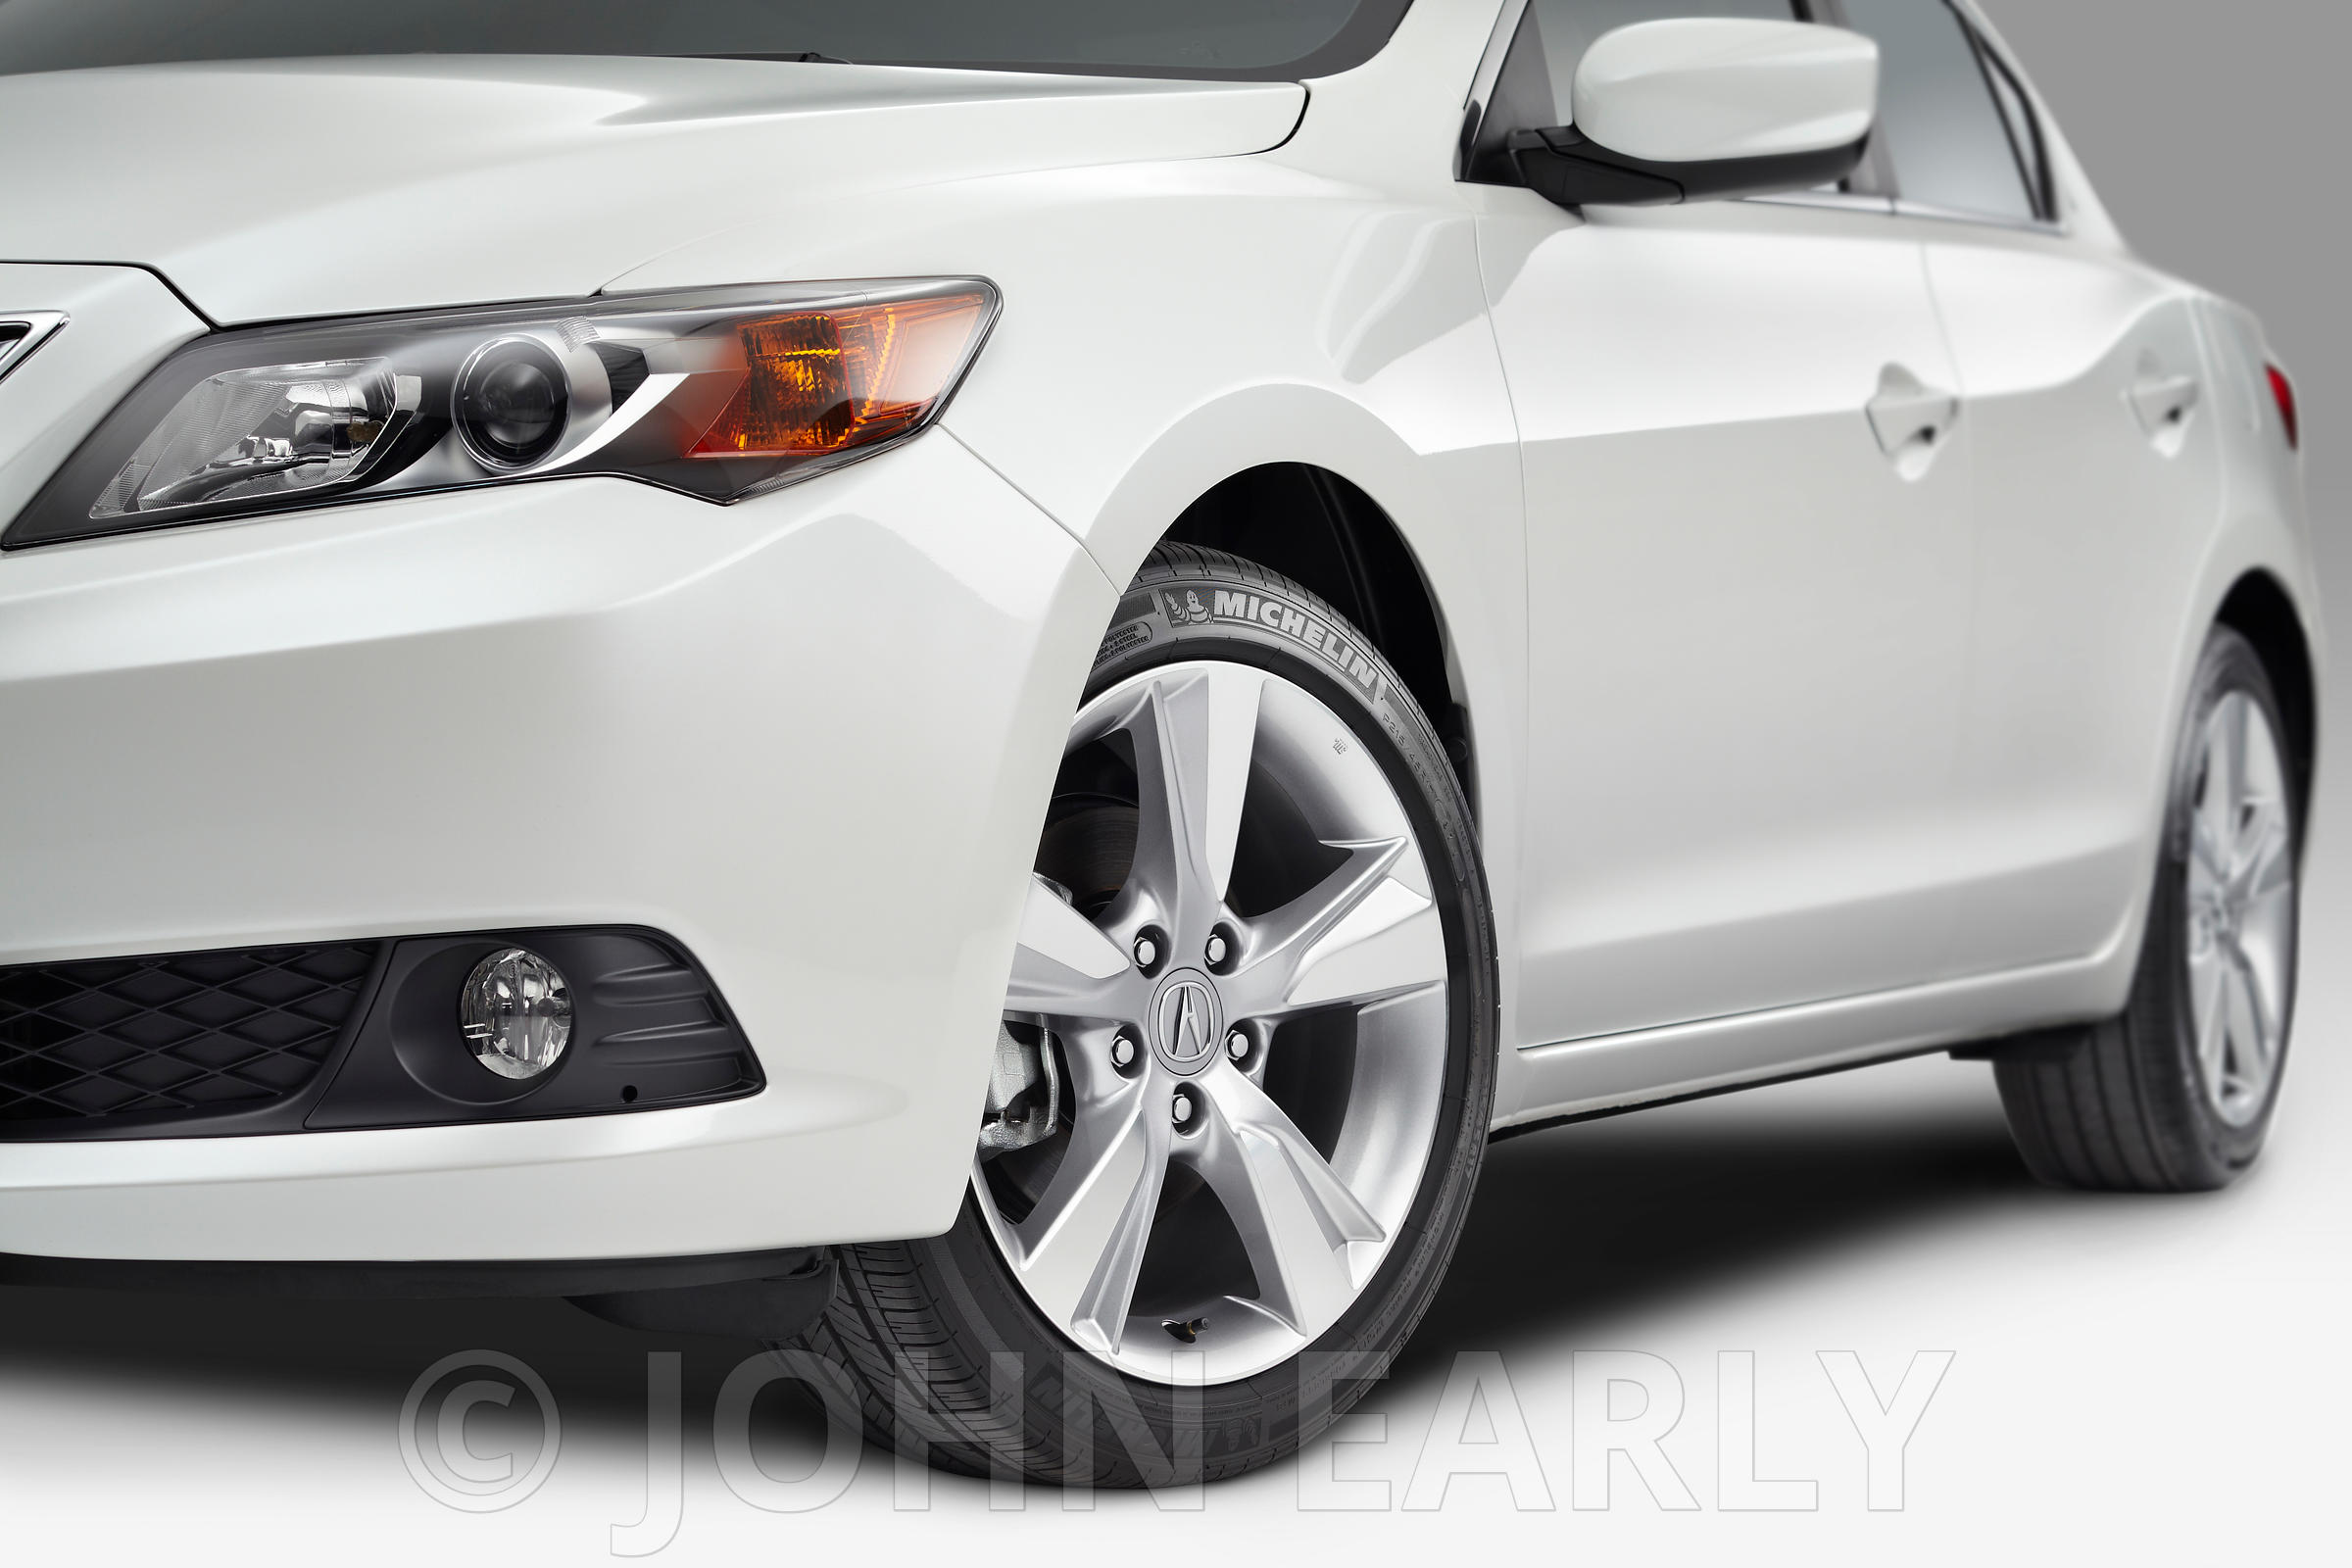 Detail 3/4 Front Shot of White Sedan With Focus on Tires and Wheels